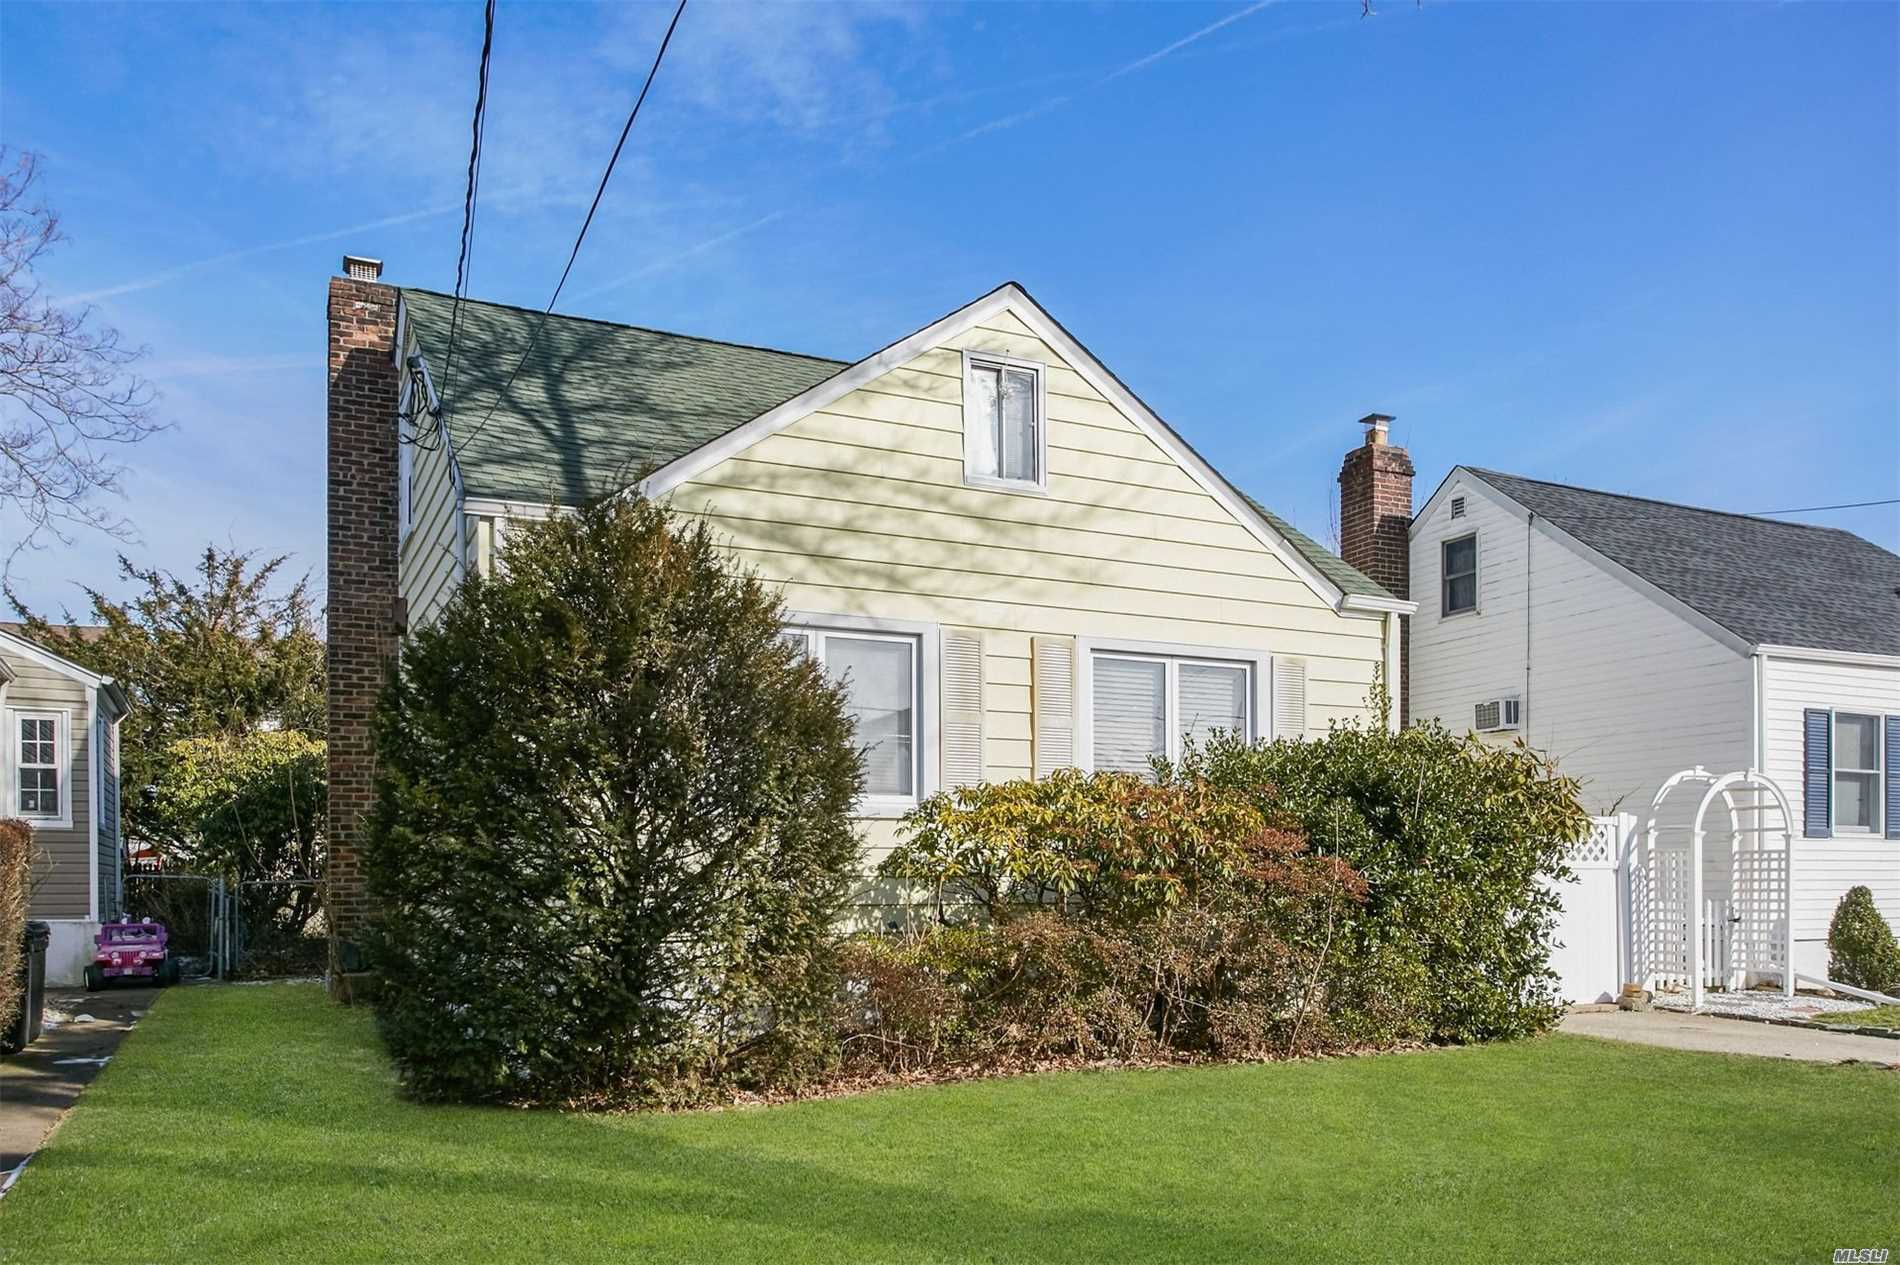 Charming Cape Cod In Desirable Quiet Street, Very Bright And Sunny. 3 Bedrooms, With New Marble Bathroom,  15 Year Roof, Anderson Window, Everything Renovated 6 Years Ago. Finished Basement, 3 Zone Heating And Camera Wire Ready. 5 Mins To Lirr. 10 Mins To Express Train, 3 Mins To Shopping Center, 6 Min To Bus Stop Connect To Jamaica Subway. Hillside Grade Elementary And Memorial High.